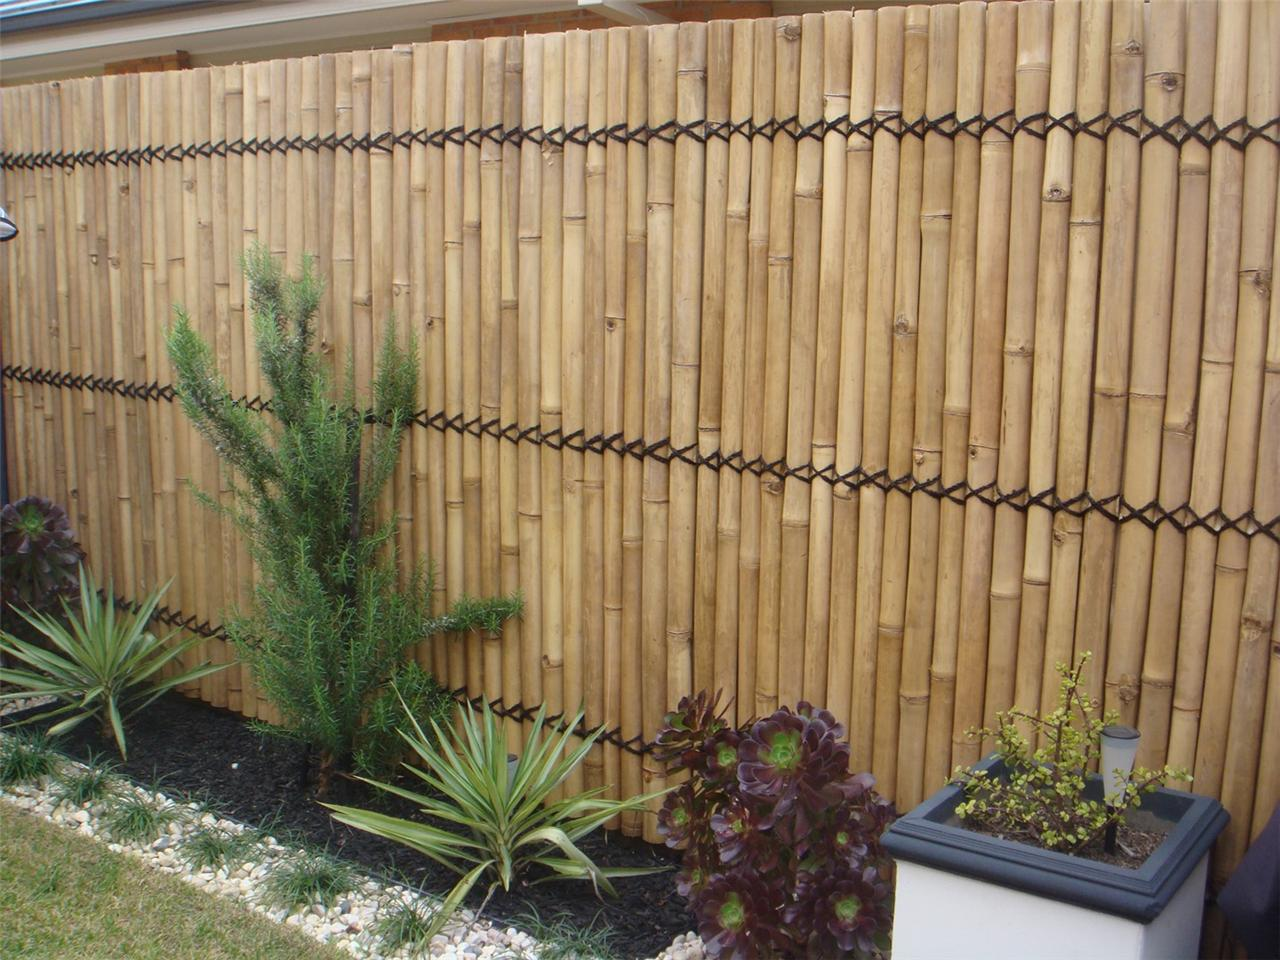 Bamboo fence Outdoor Areas Pinterest Bamboo fence